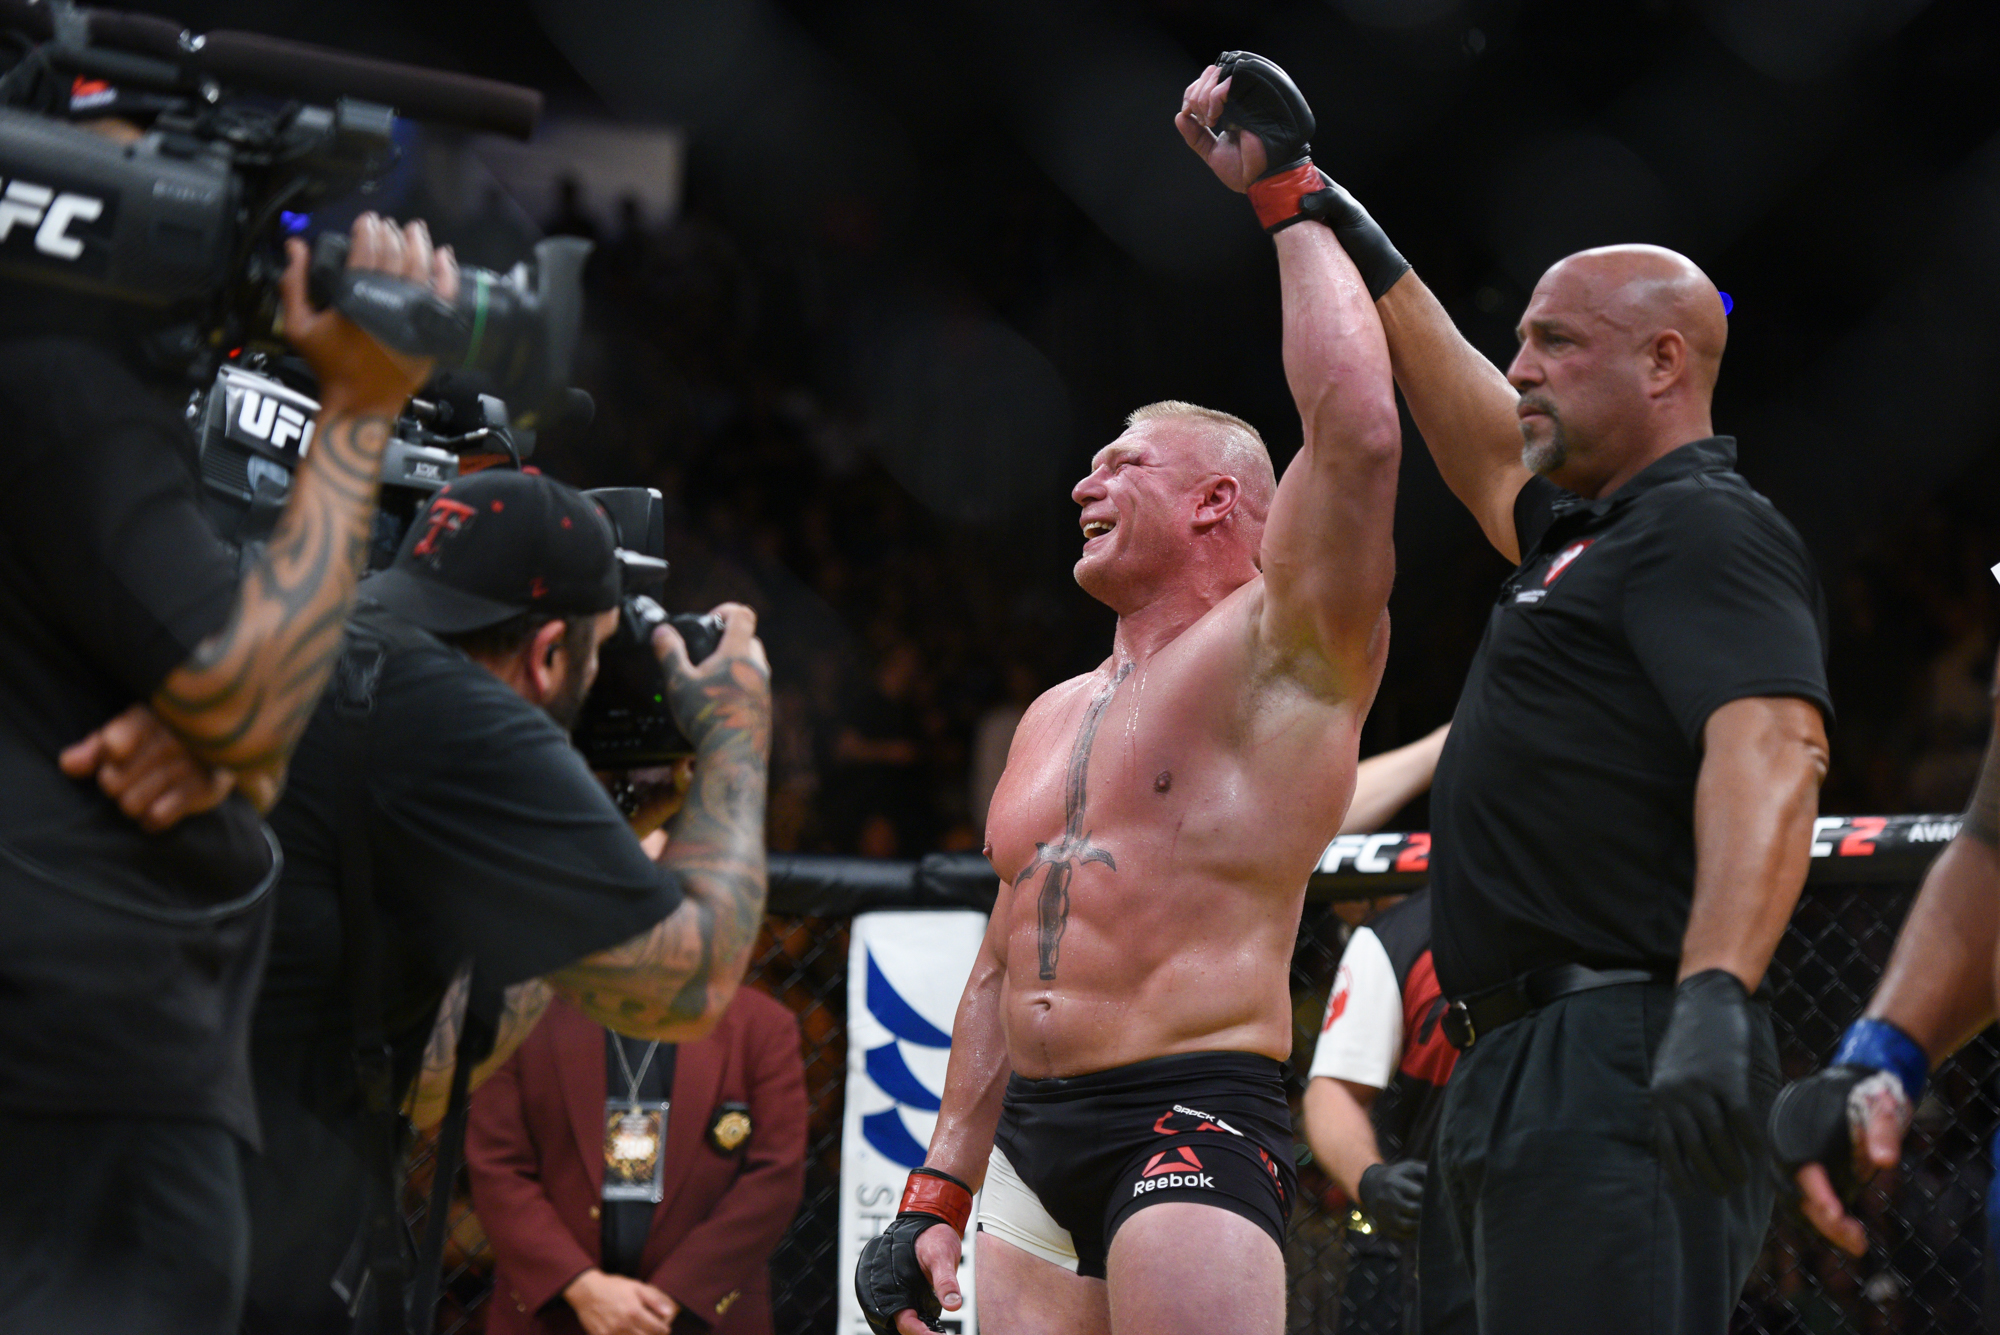 Brock Lesnar is tipped to return to MMA in January 2019